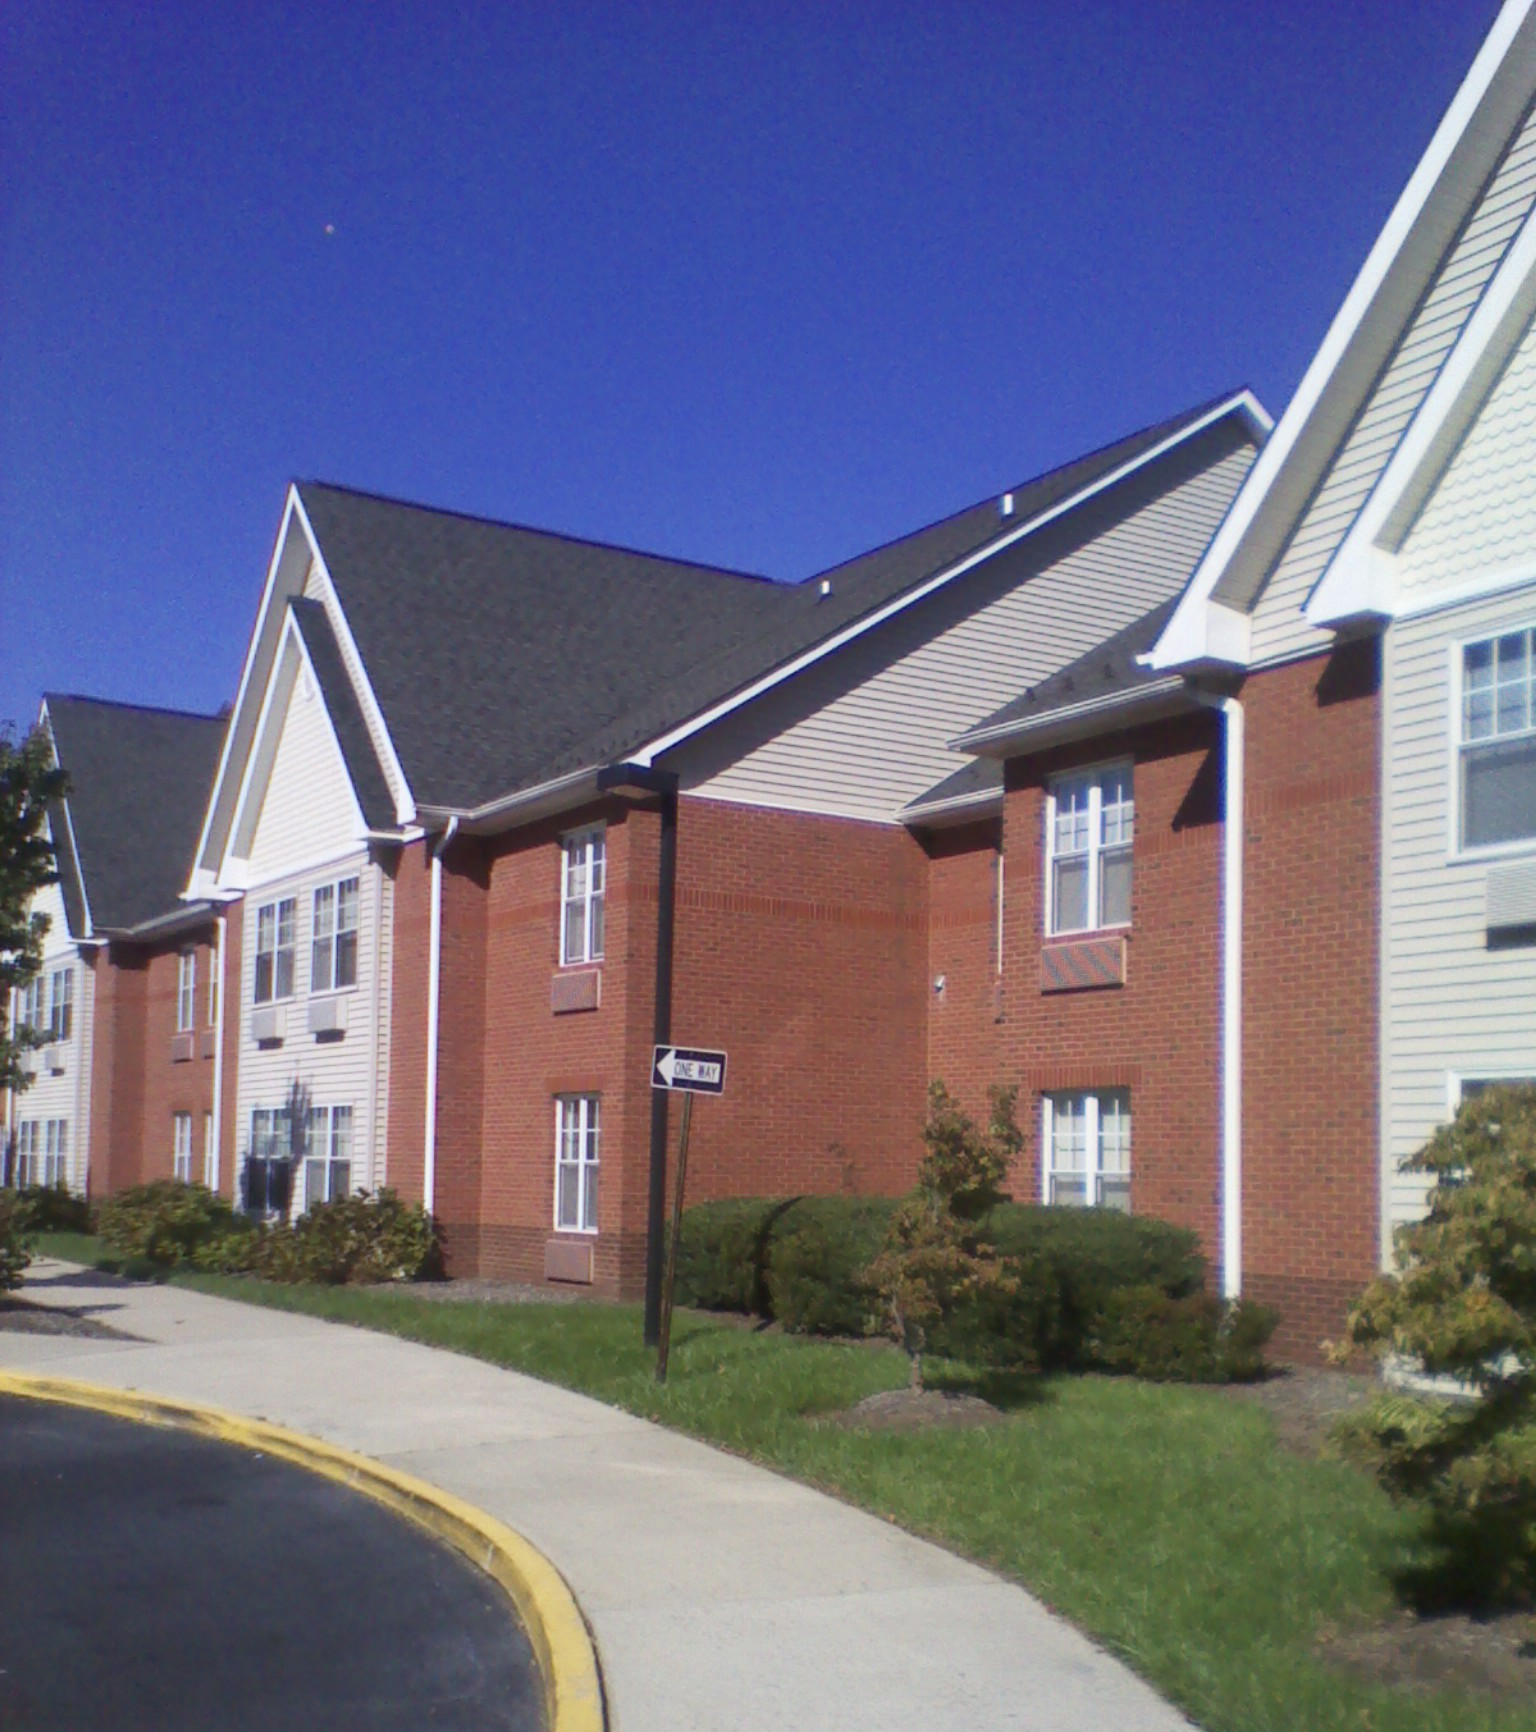 Apartments Near TESC 62+ Adult Community McCorristin Square for Thomas Edison State College Students in Trenton, NJ